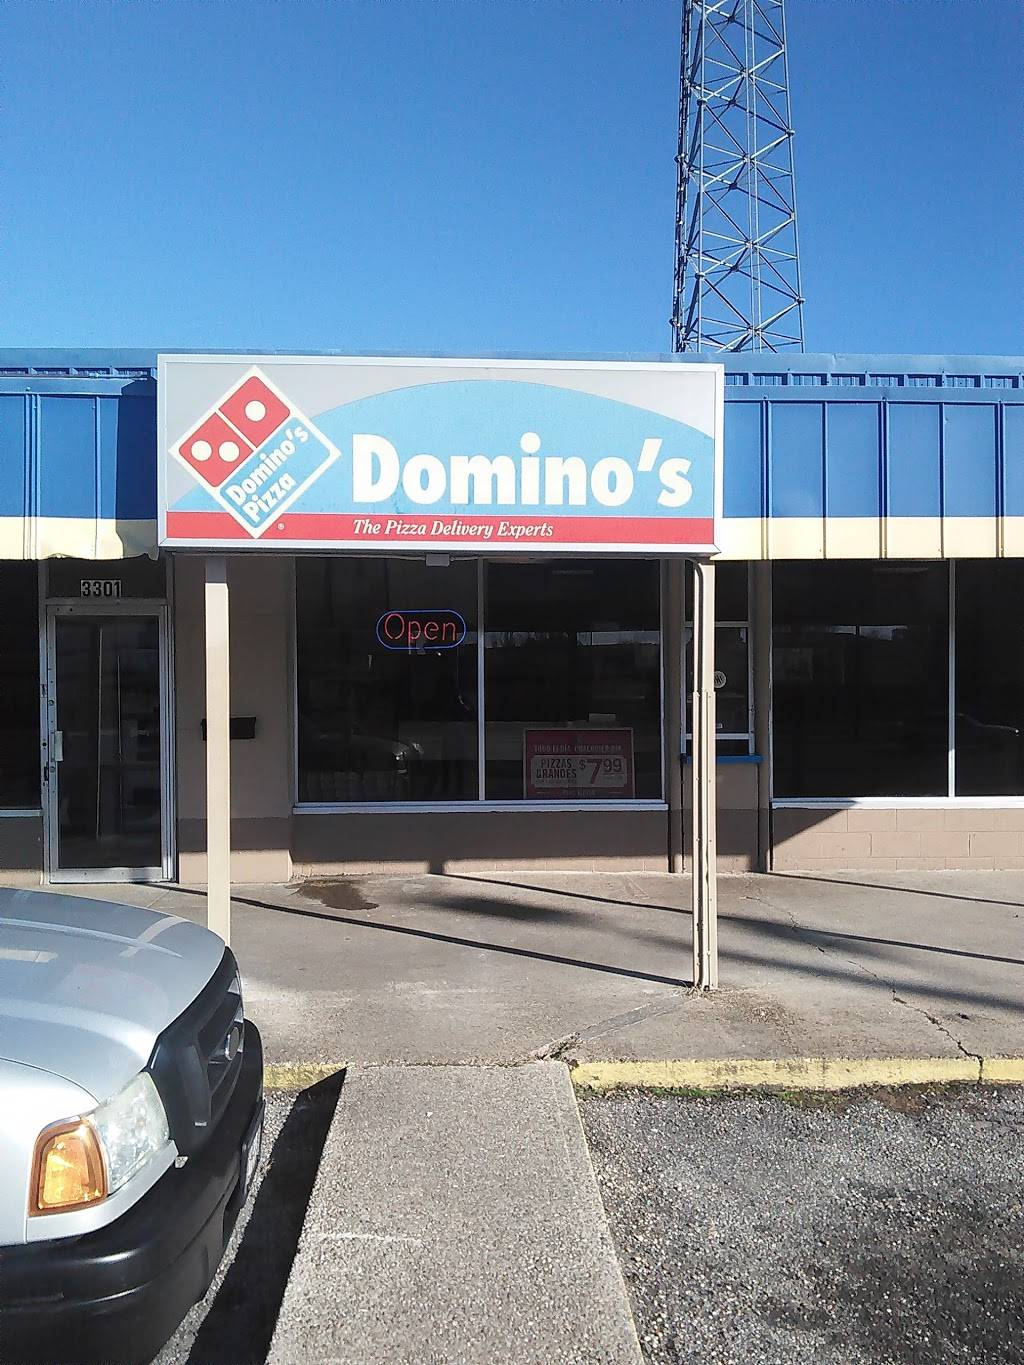 Dominos Pizza | meal delivery | 3301 Mobile Hwy, Montgomery, AL 36108, USA | 3342844600 OR +1 334-284-4600